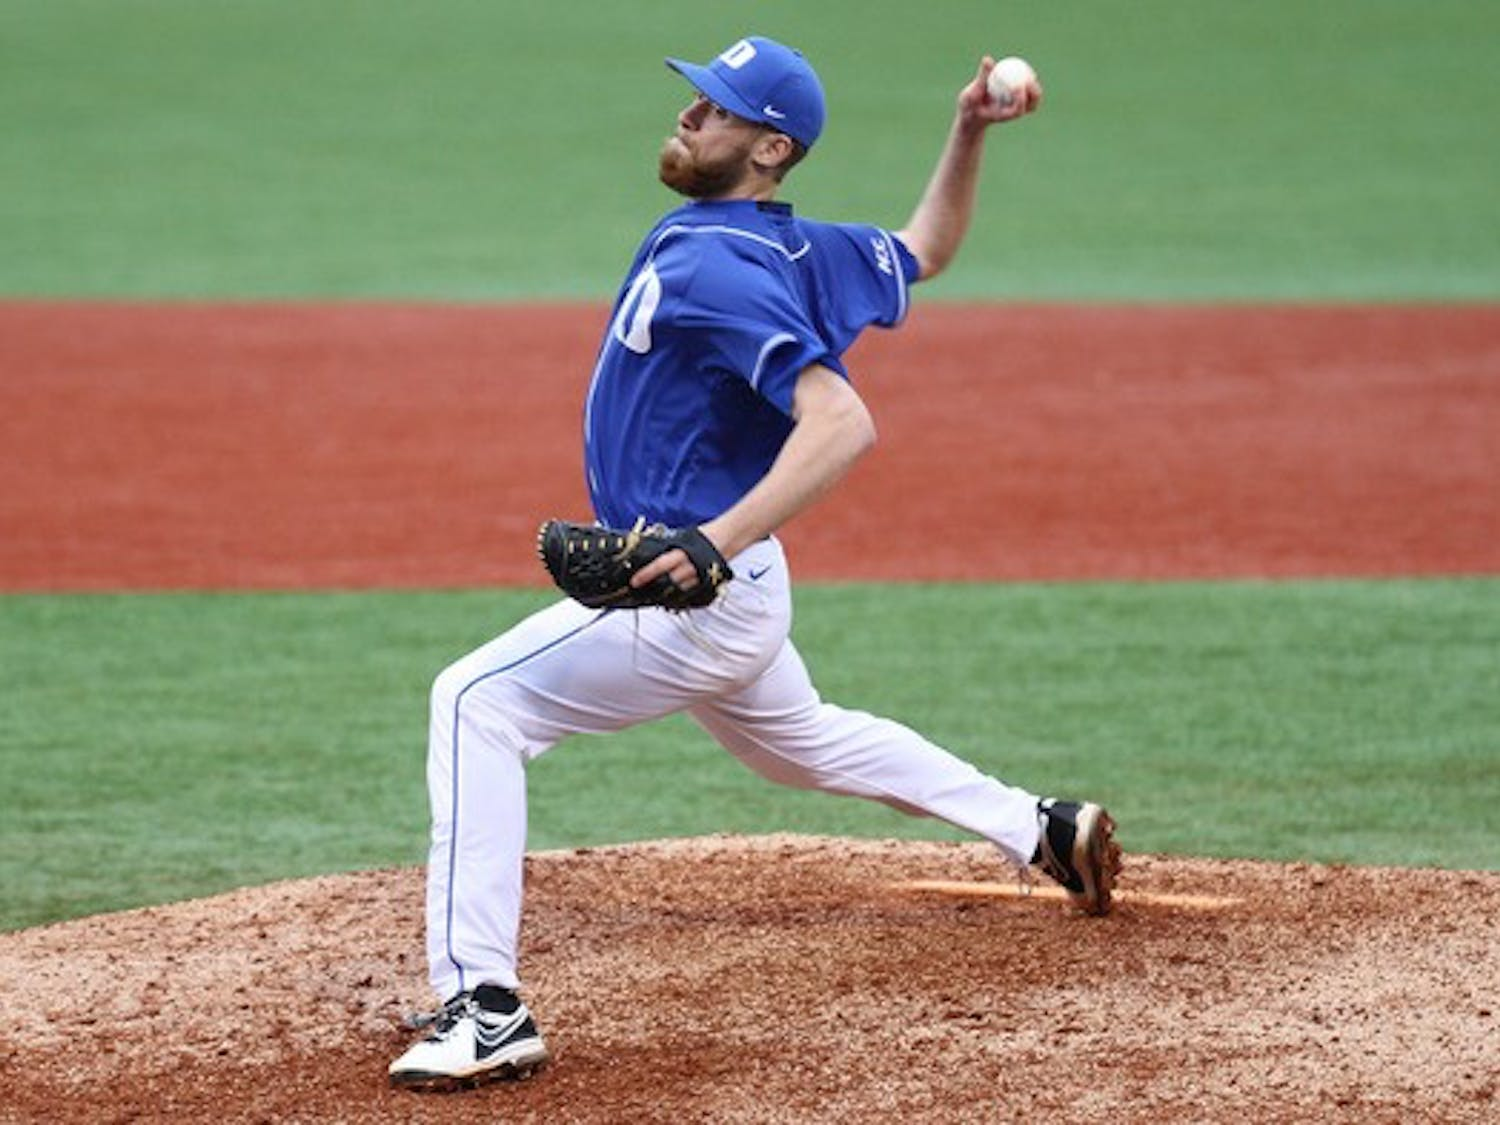 Sophomore Bailey Clark turned in another quality start, firing eight innings and giving up just one earned run.